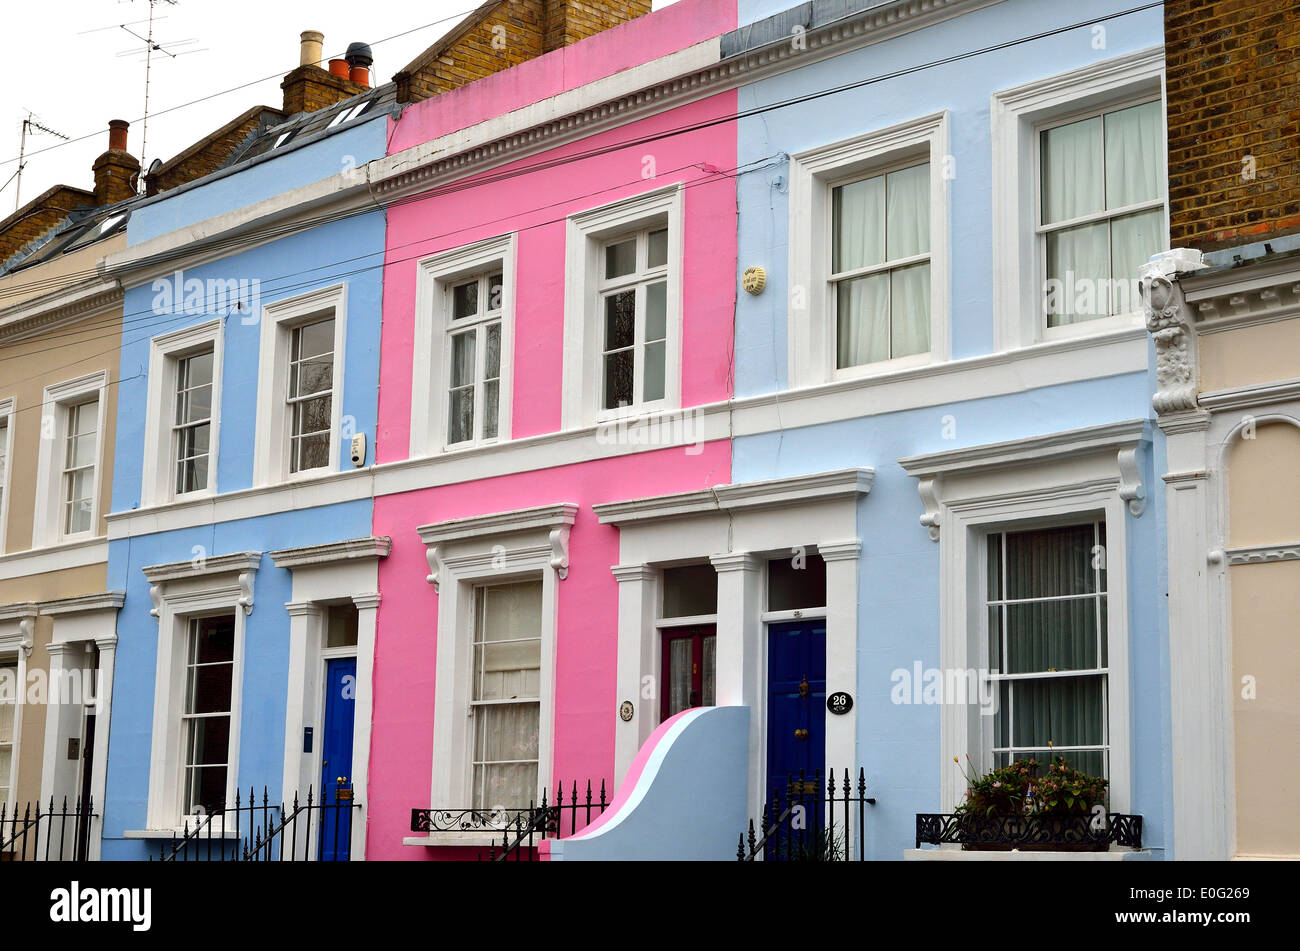 Colourful terraced houses in notting hill london stock for House notting hill